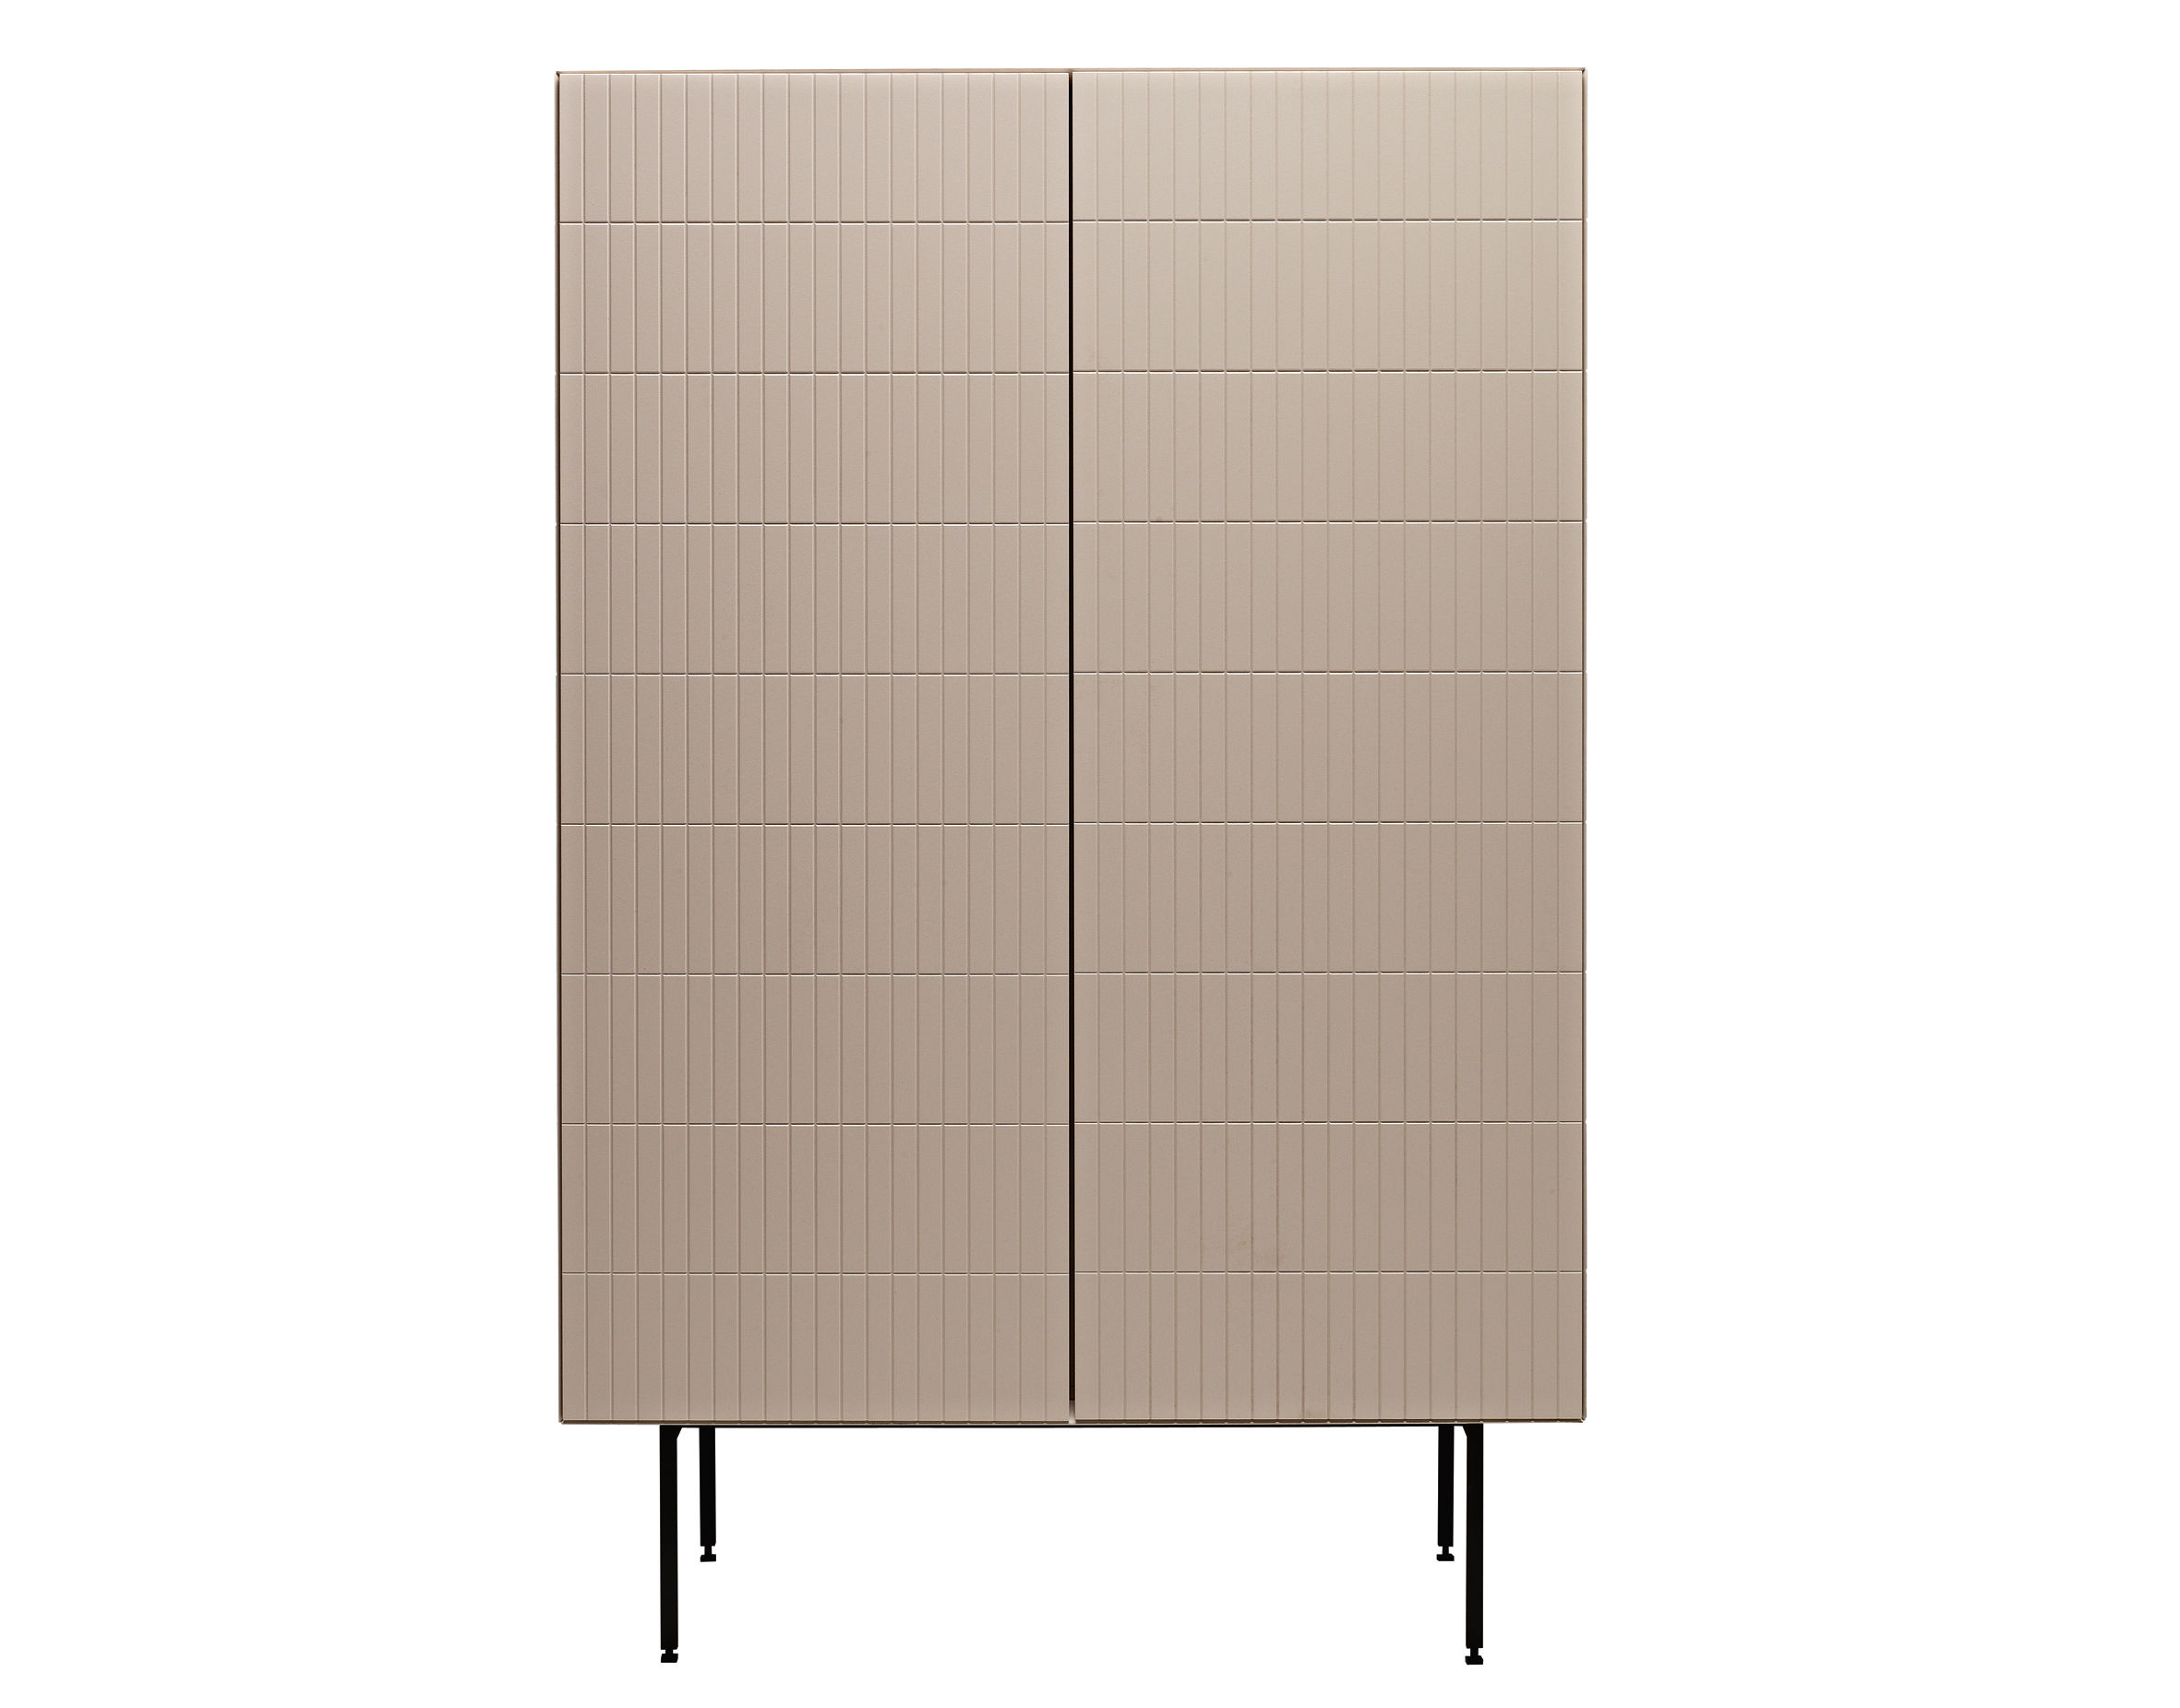 Furniture - Dressers & Storage Units - Toshi Wardrobe by Casamania - Light grey - Lacquered MDF, Metal